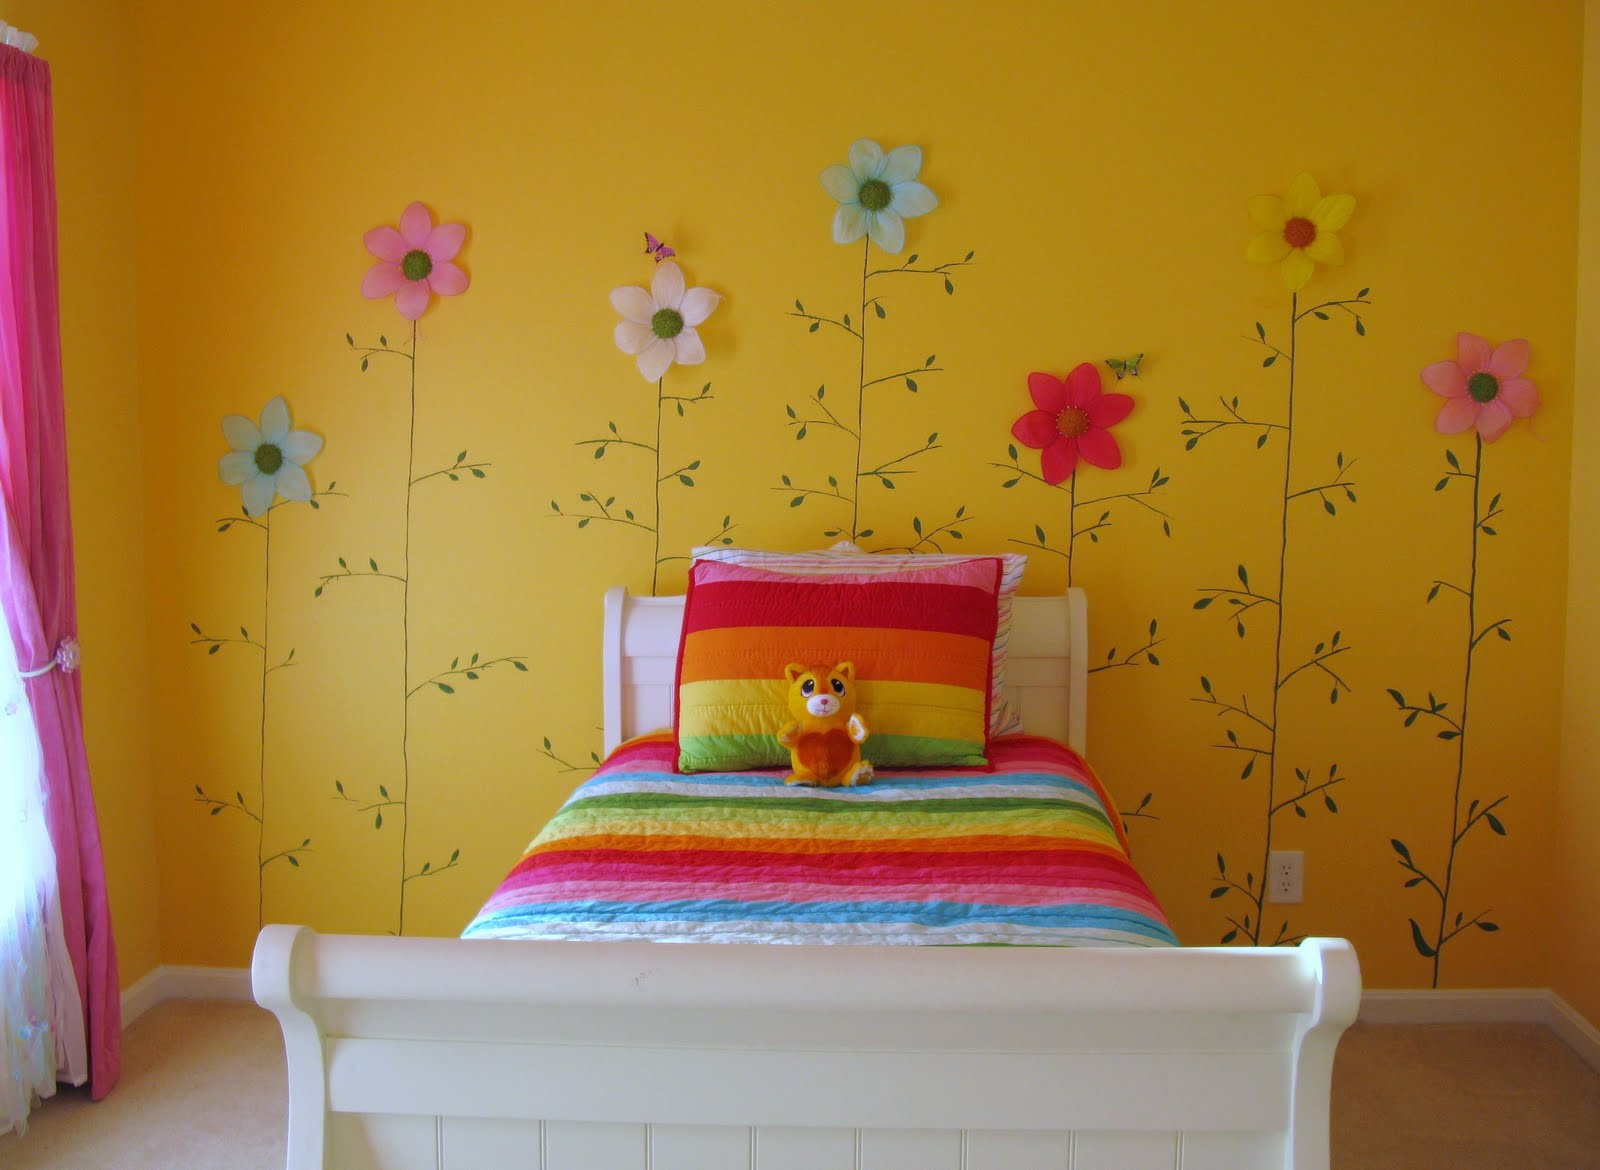 Decorar una habitaci n infantil con flores de colores de for Colores para decorar una casa